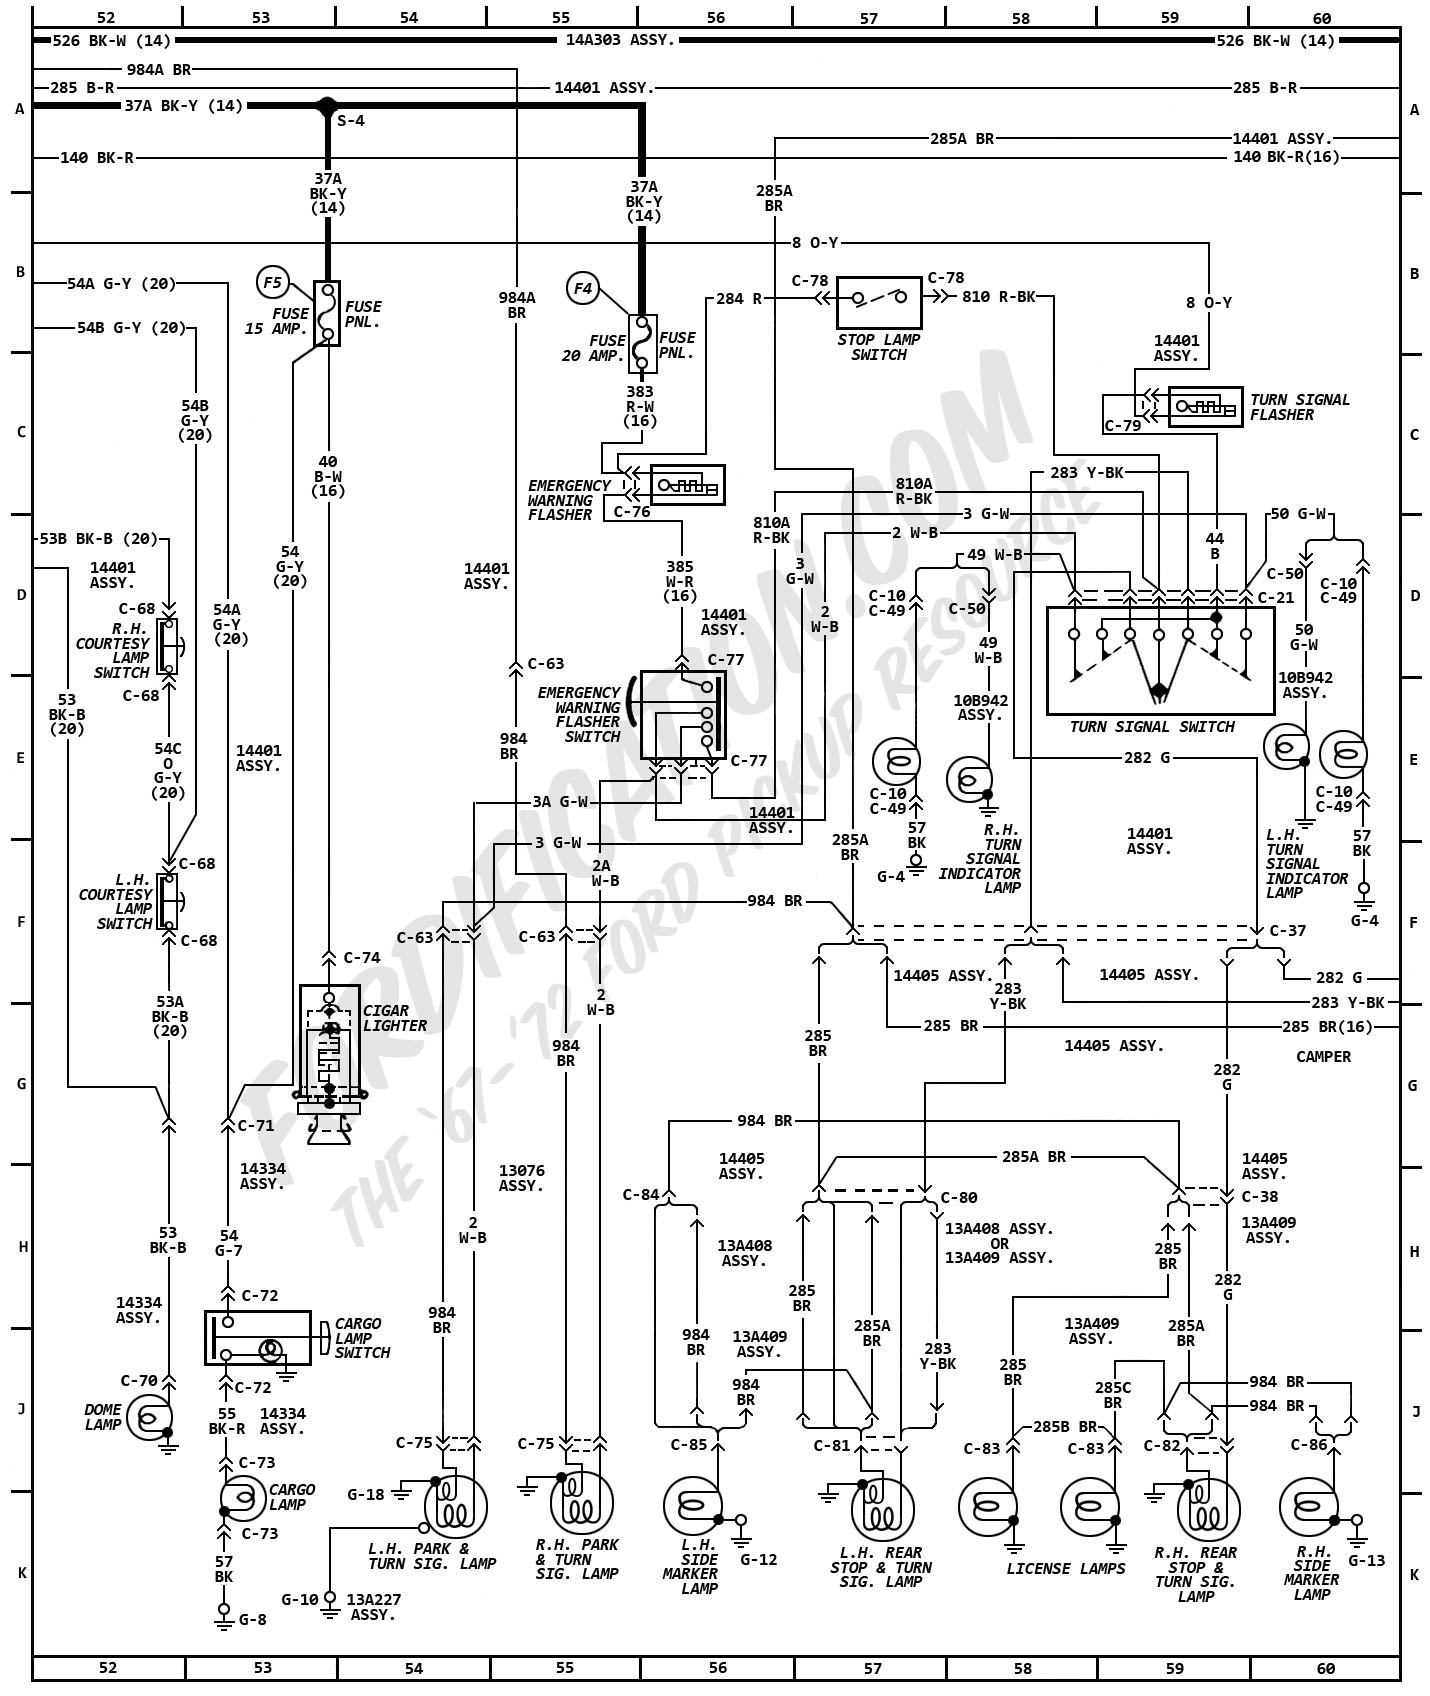 1972 ford truck wiring diagrams fordification com rh fordification com 1972 ford f100 wiring diagram pdf 1972 ford f100 wiring diagram